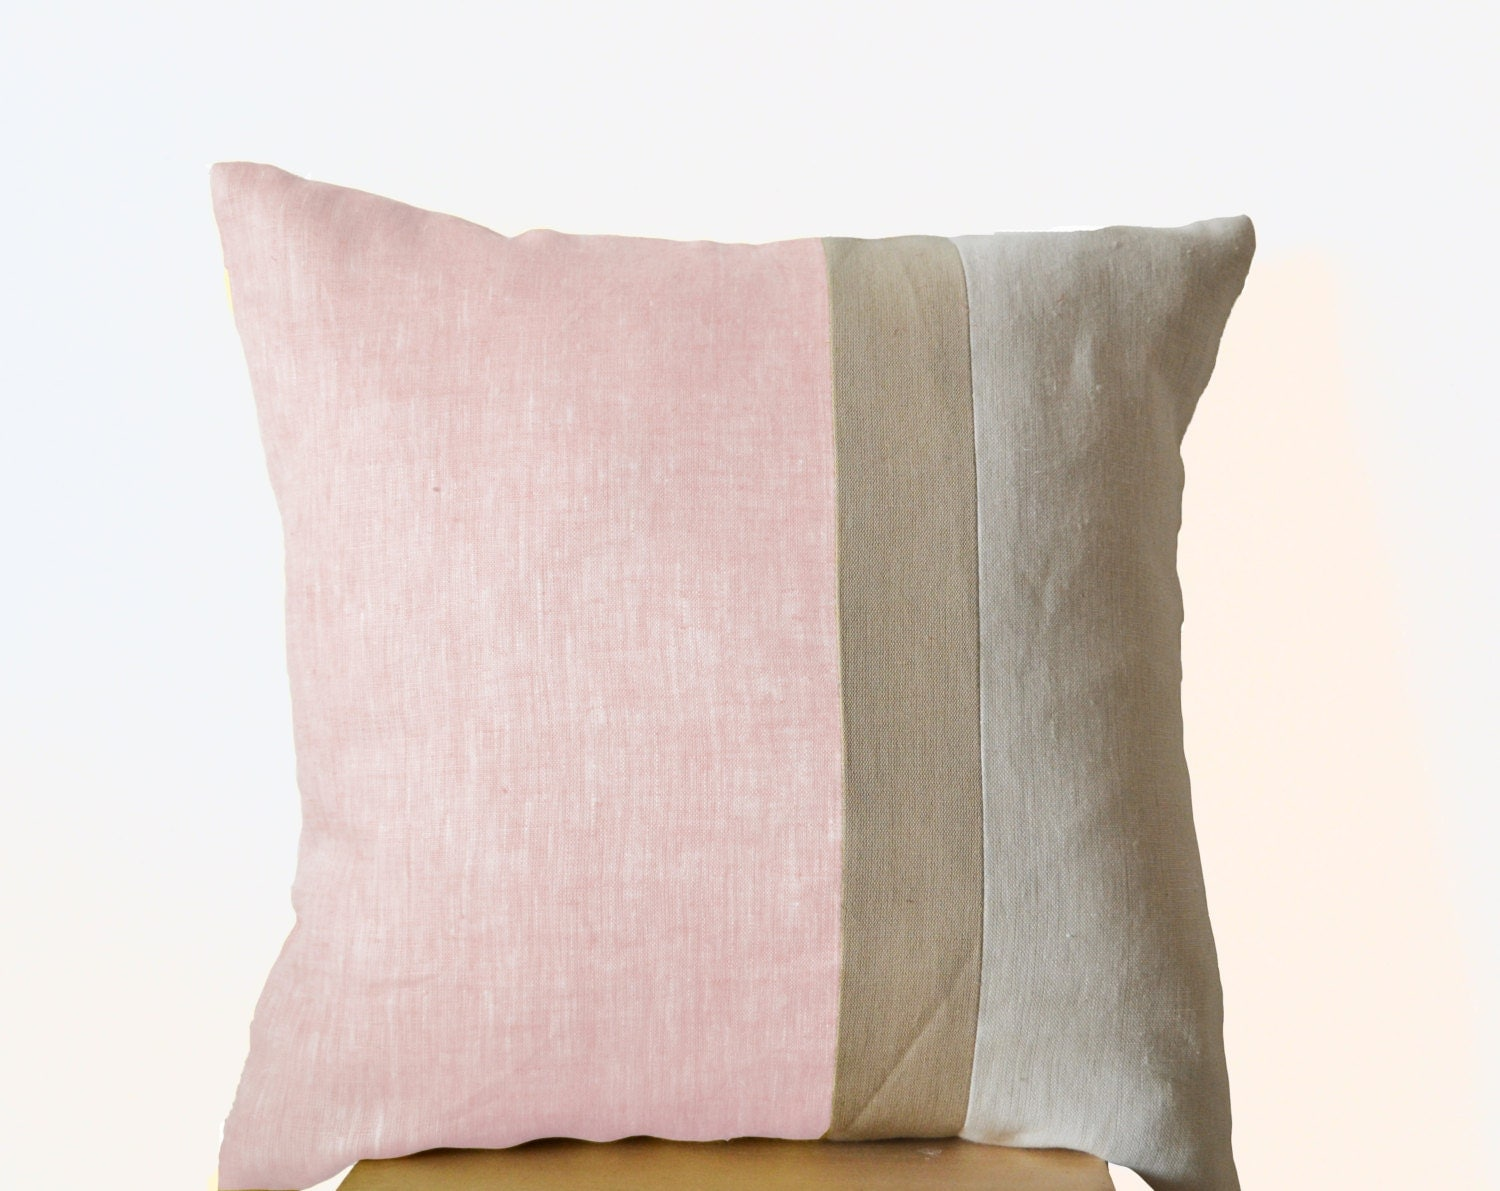 pink throw pillows for sofa chesterfield living room design ideas pillow color block couch